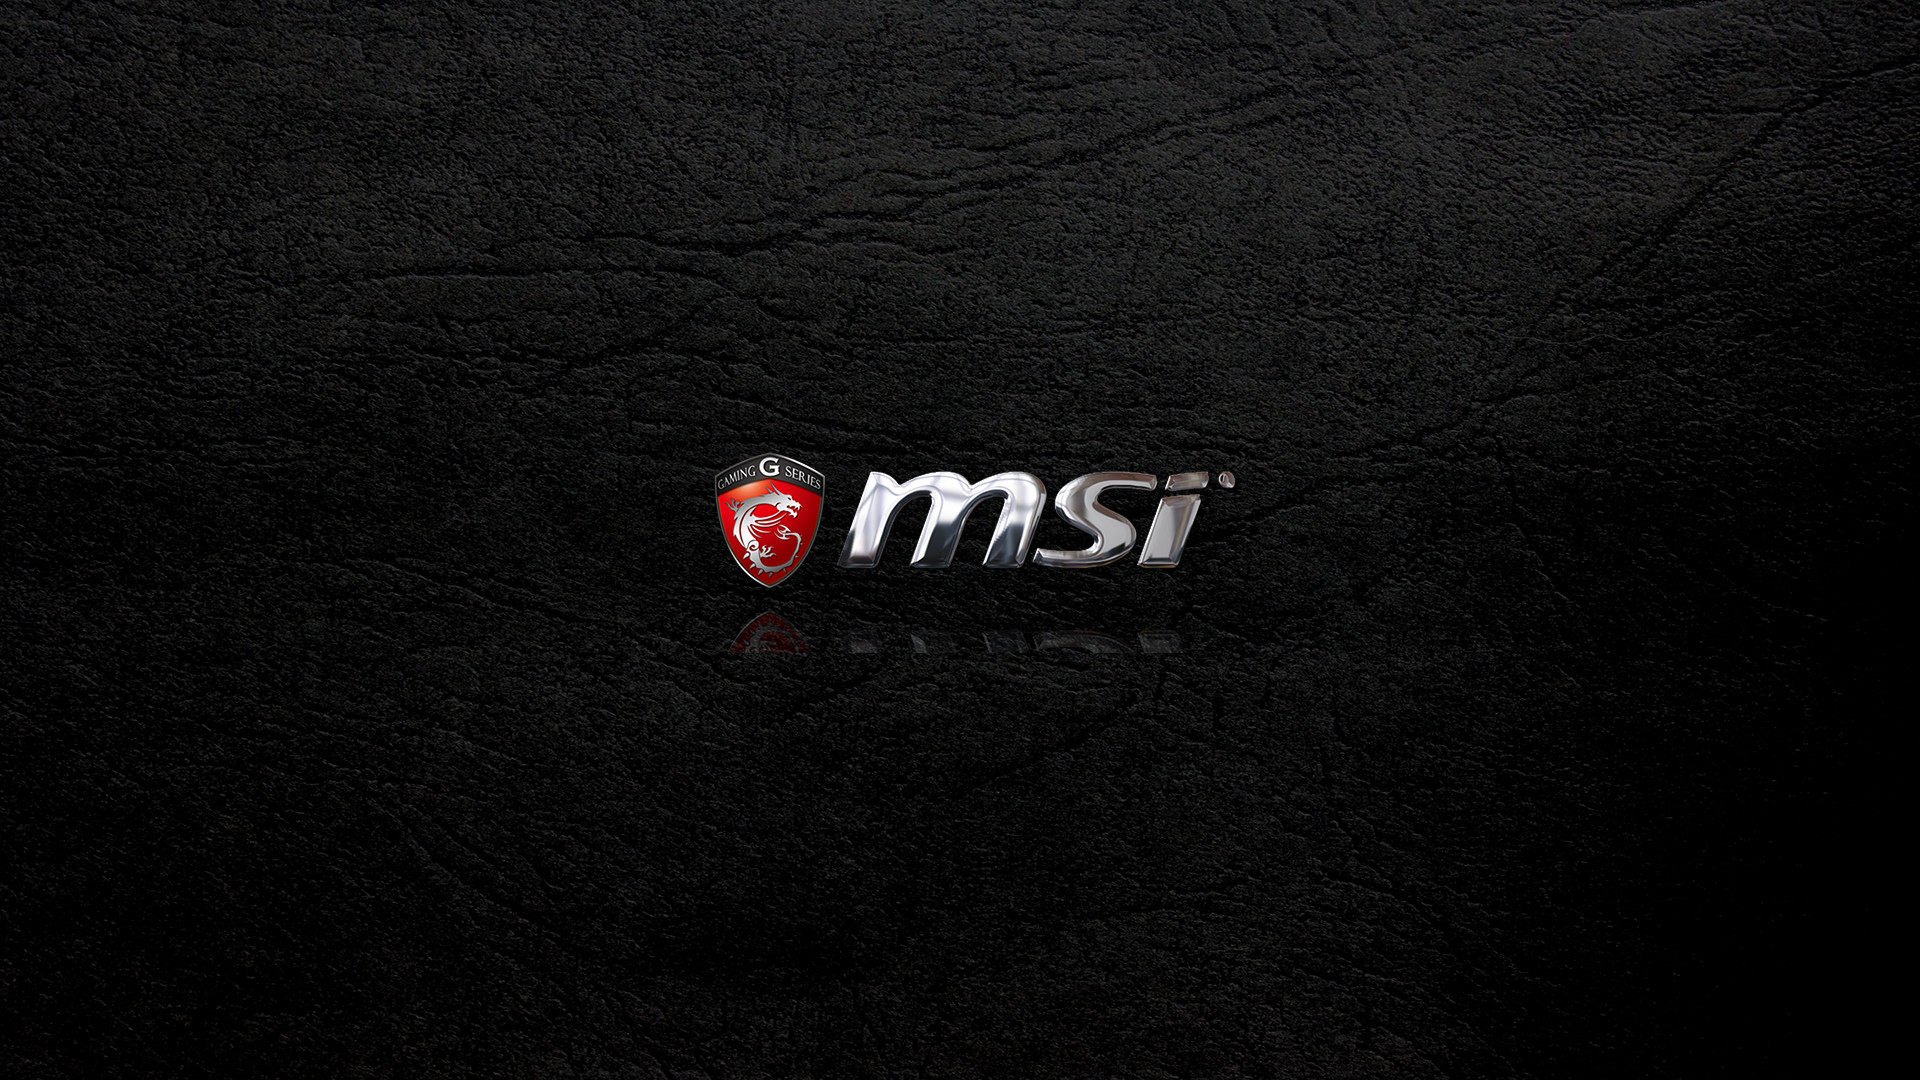 Thought I would share some wallpaper that I have created black leather msi.jpg  …